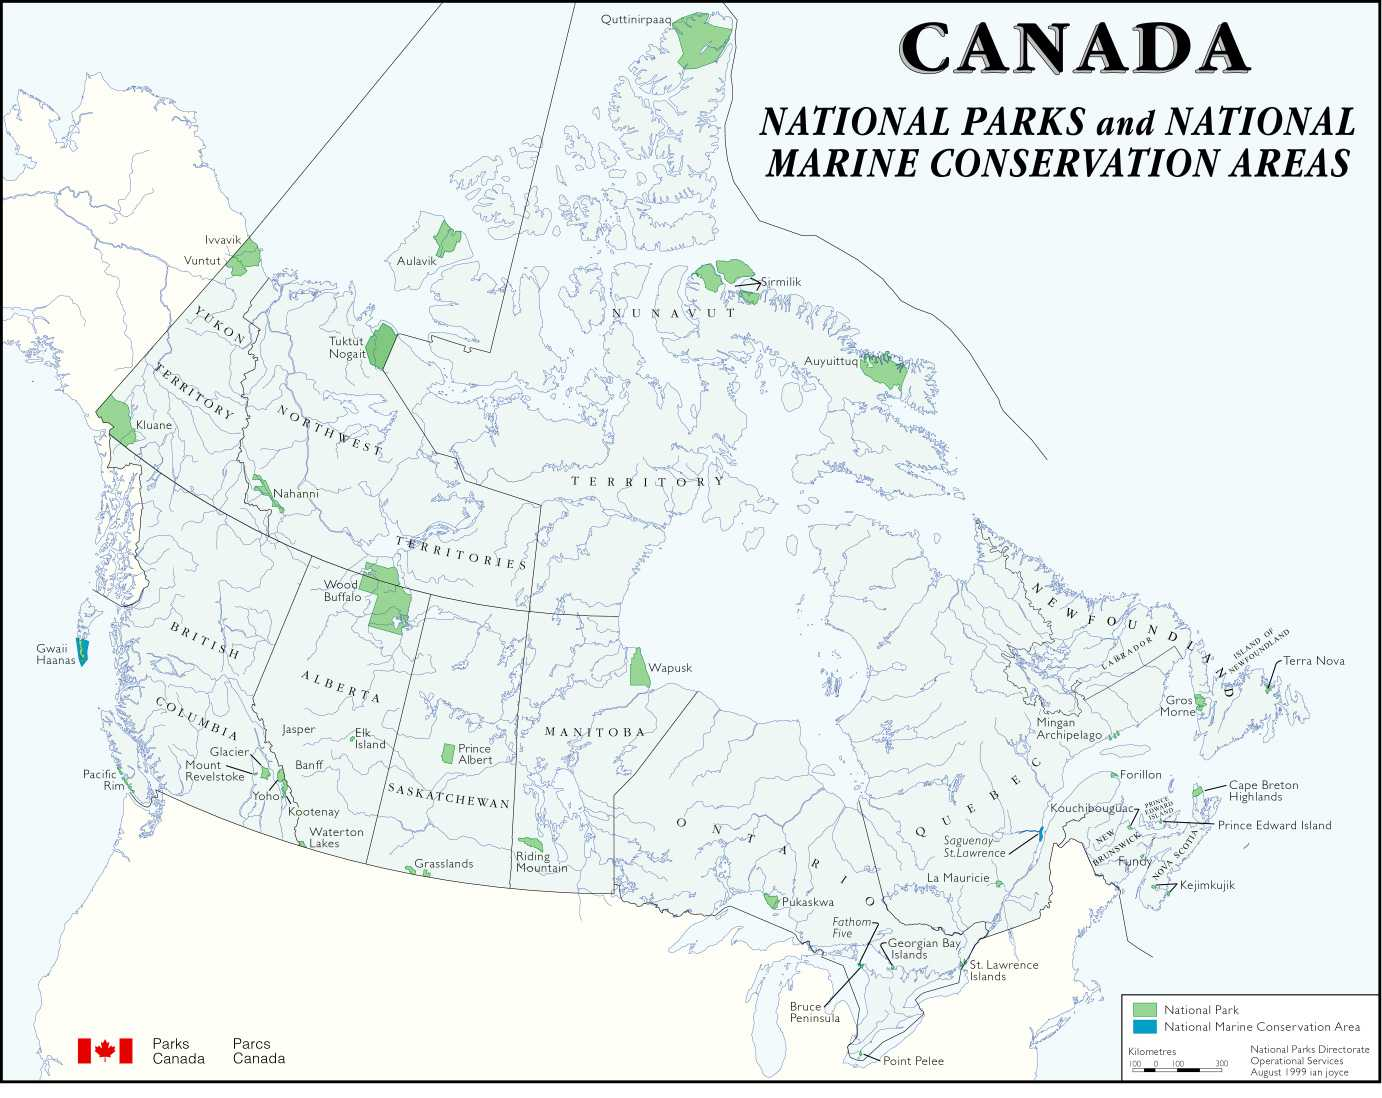 Map showing all of Canada's National Parks and National Marine Conservation Areas